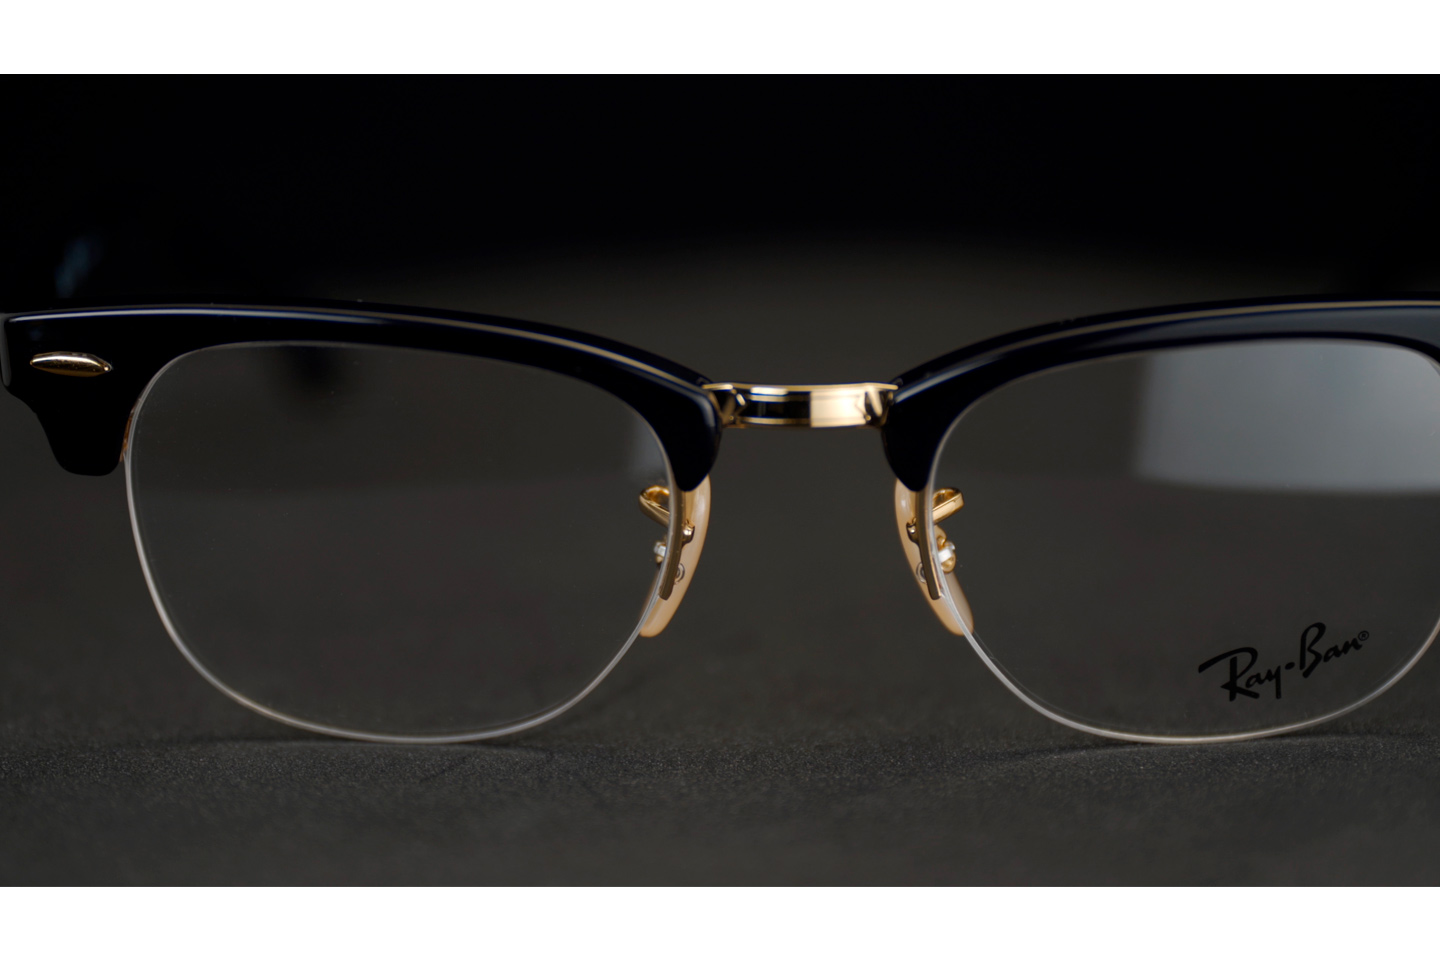 Ray-Ban RB5154 Clubmaster Eyeglasses Review